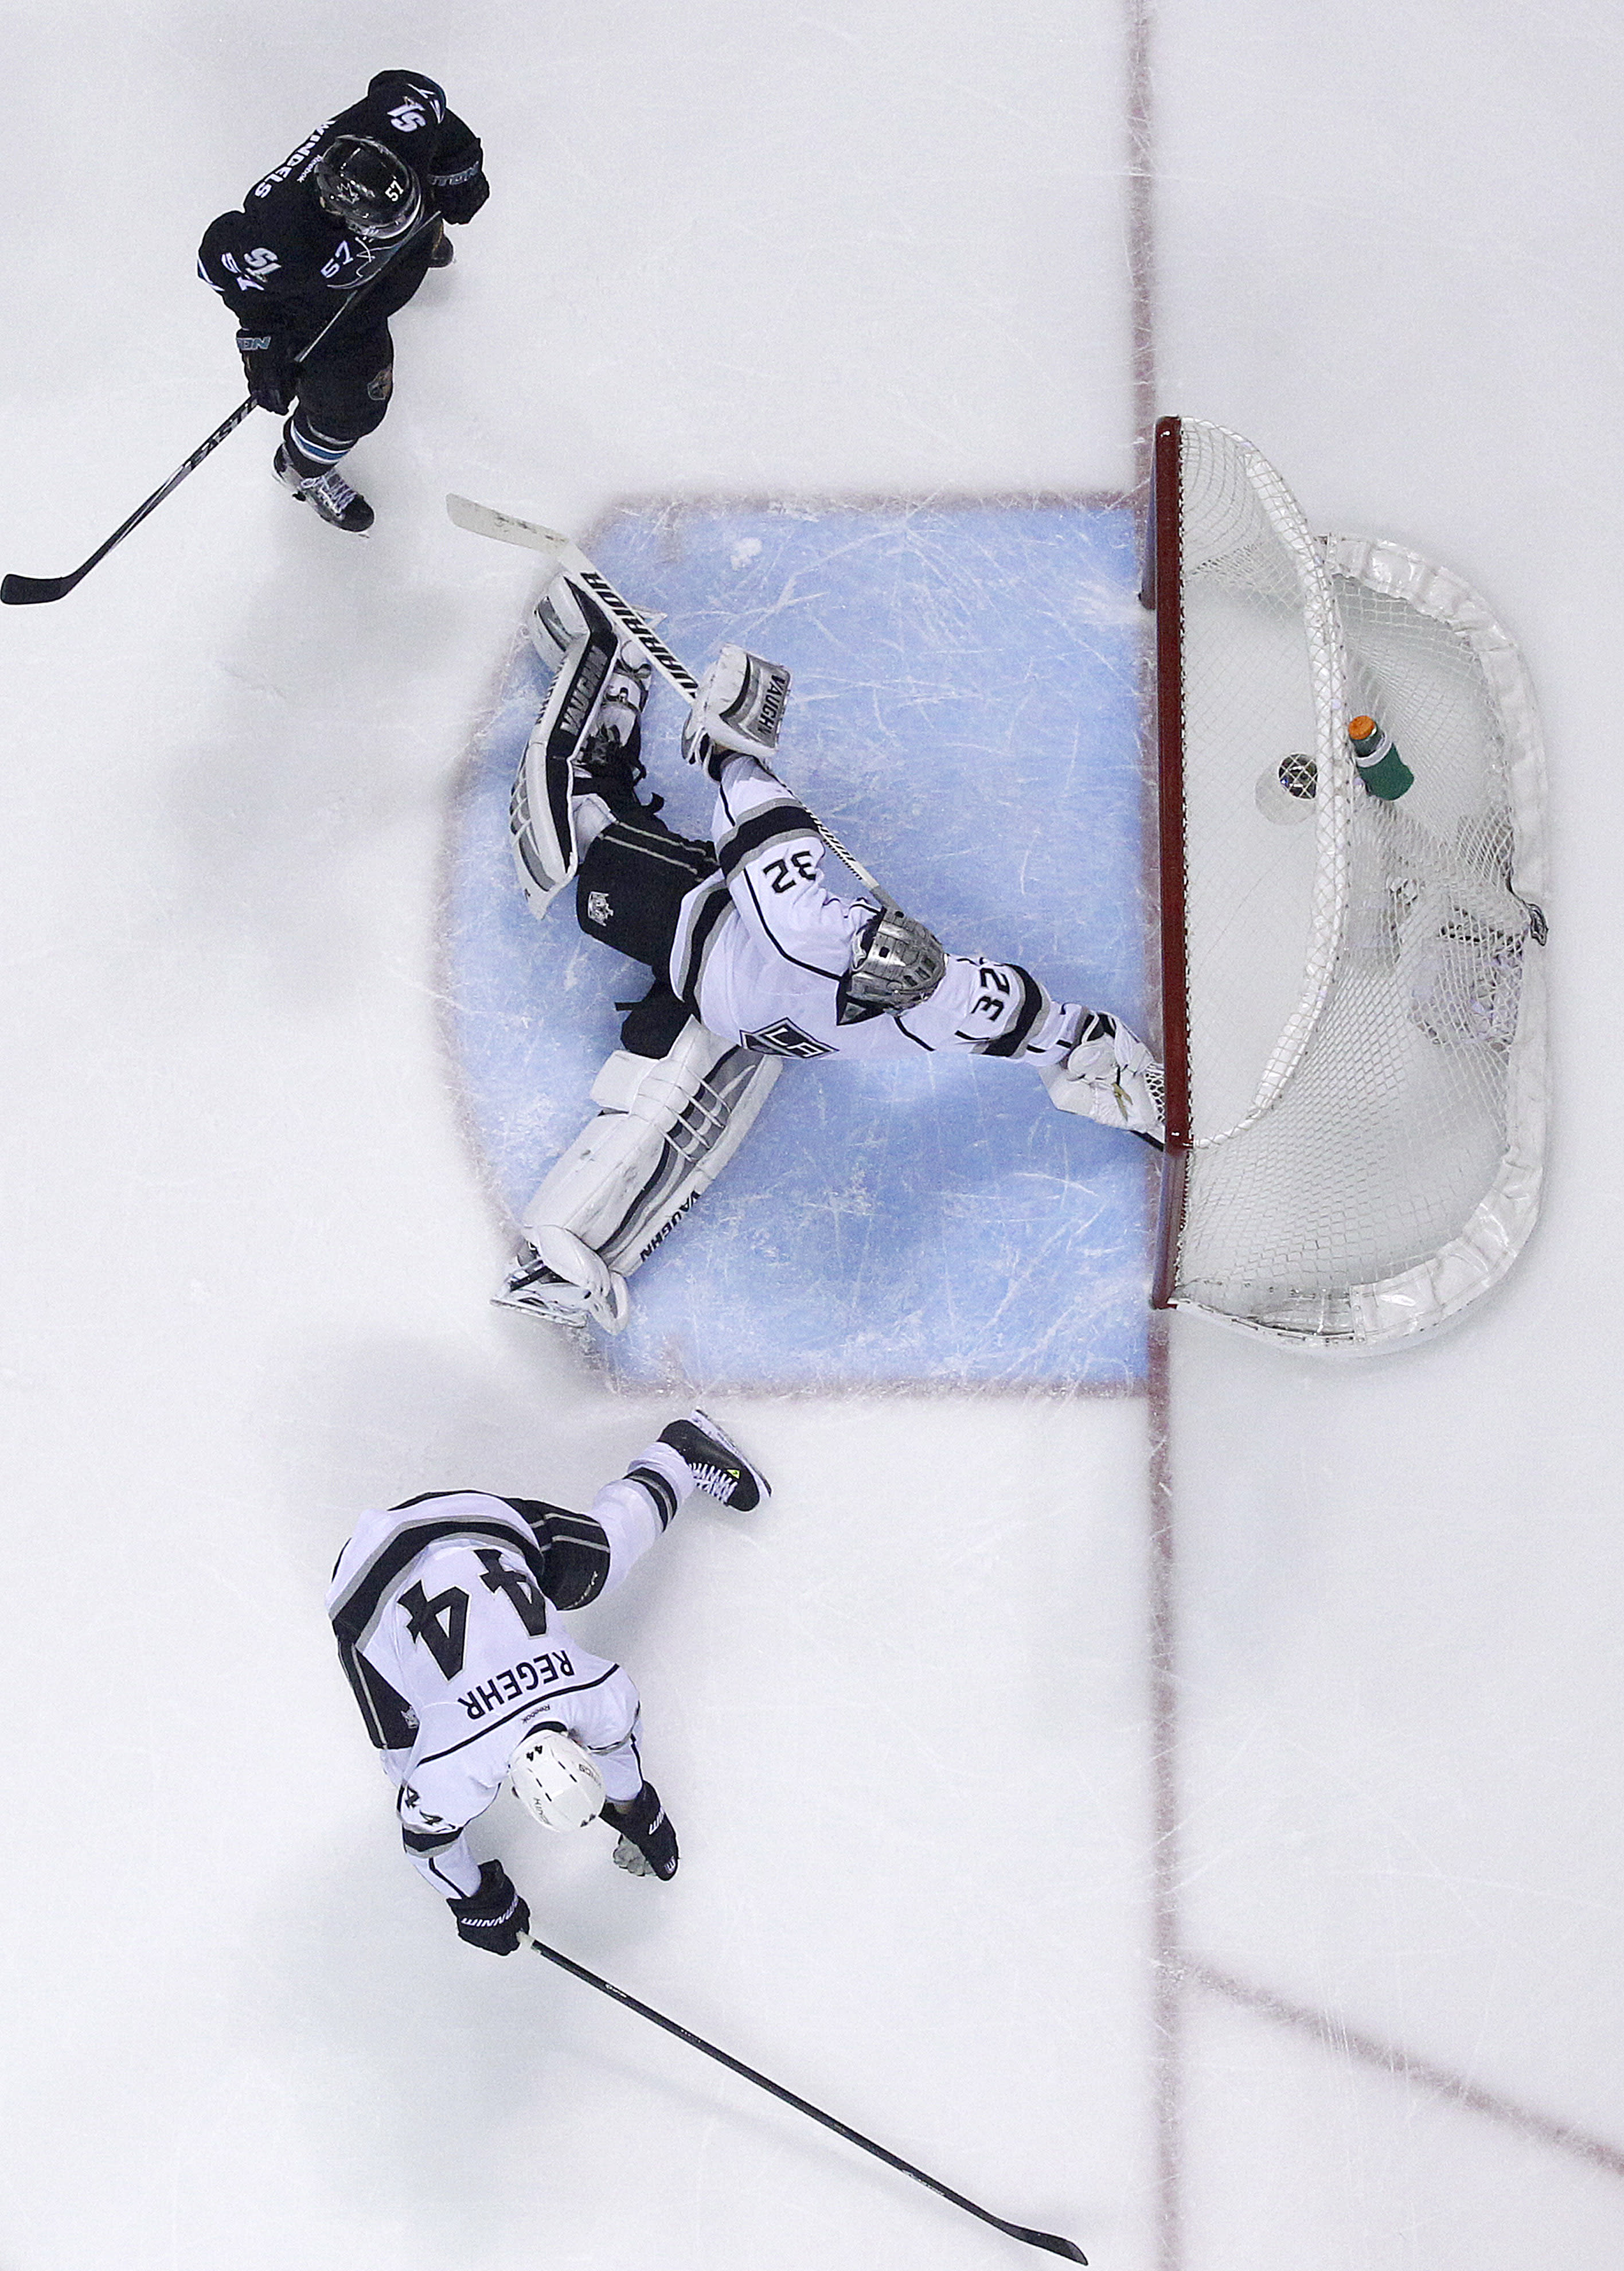 Los Angeles Kings goalie Jonathan Quick (32) makes a save on a goal attempt by the San Jose Sharks during the third period of Game 4 of an NHL hockey first-round playoff series in San Jose, Calif., Saturday, April 26, 2014. Los Angeles won 3-0. (AP Photo/Tony Avelar)